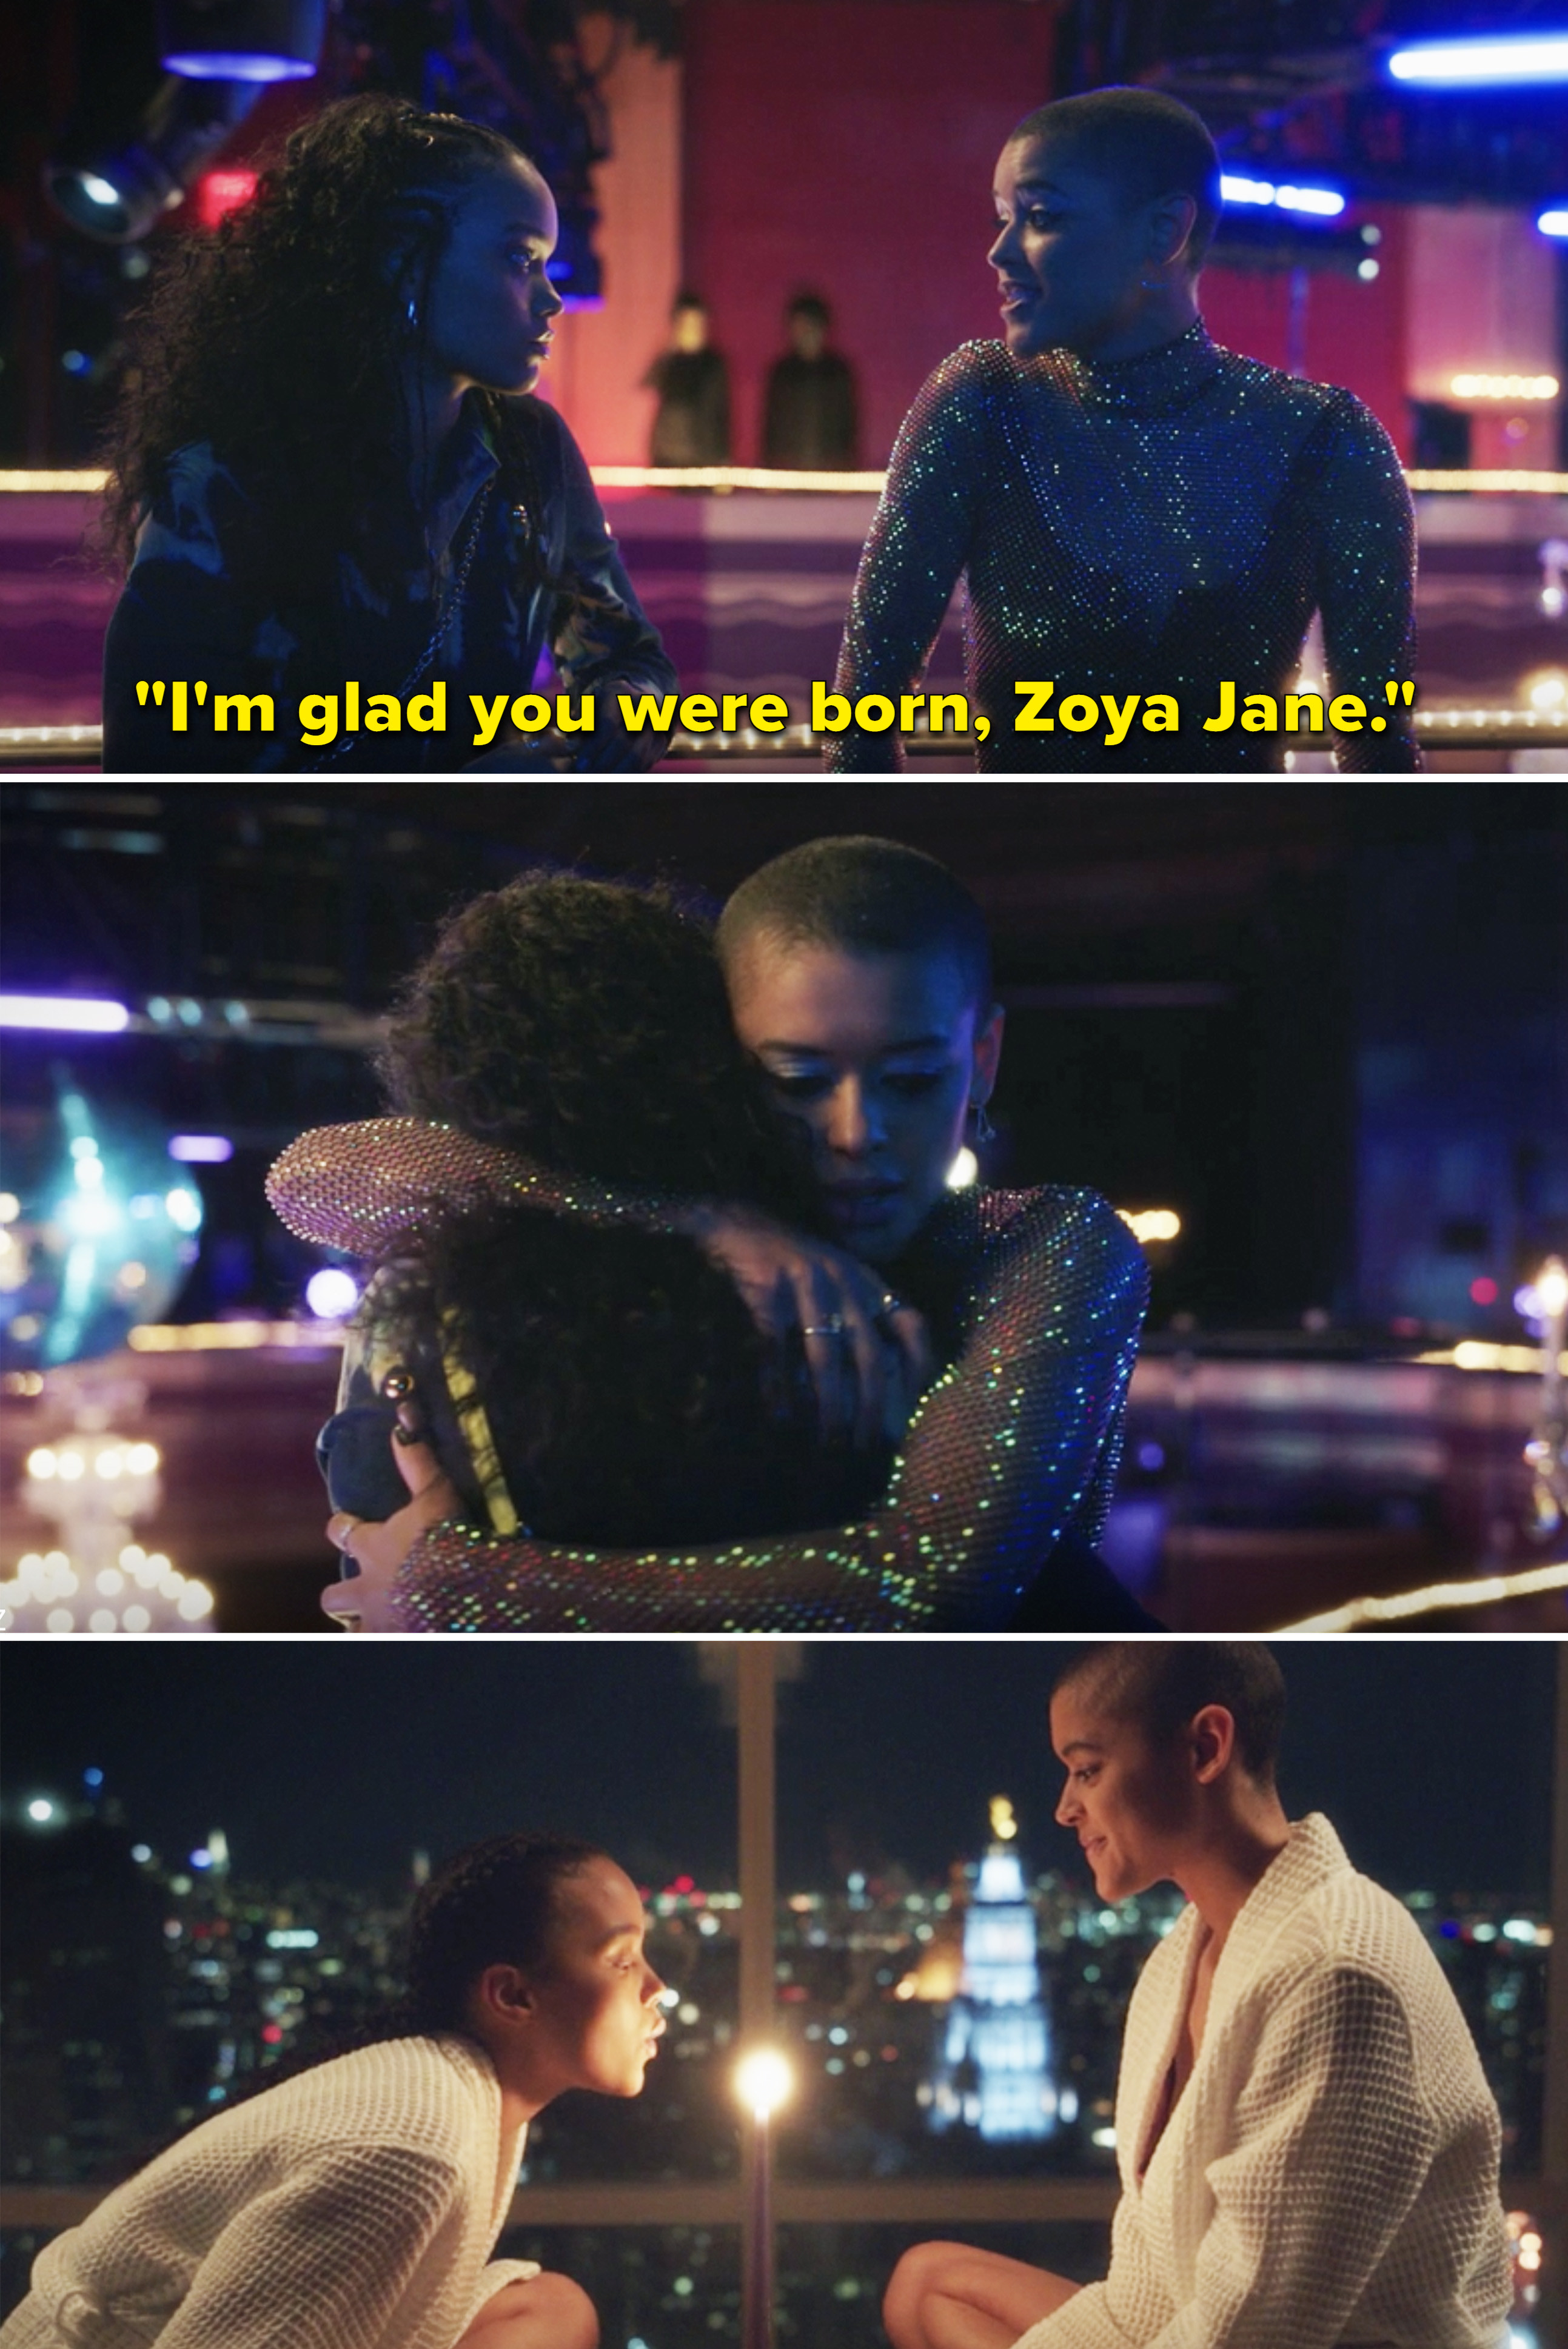 """Julien telling Zoya, """"I'm glad you were born, Zoya Jane"""" and the two of them hugging"""